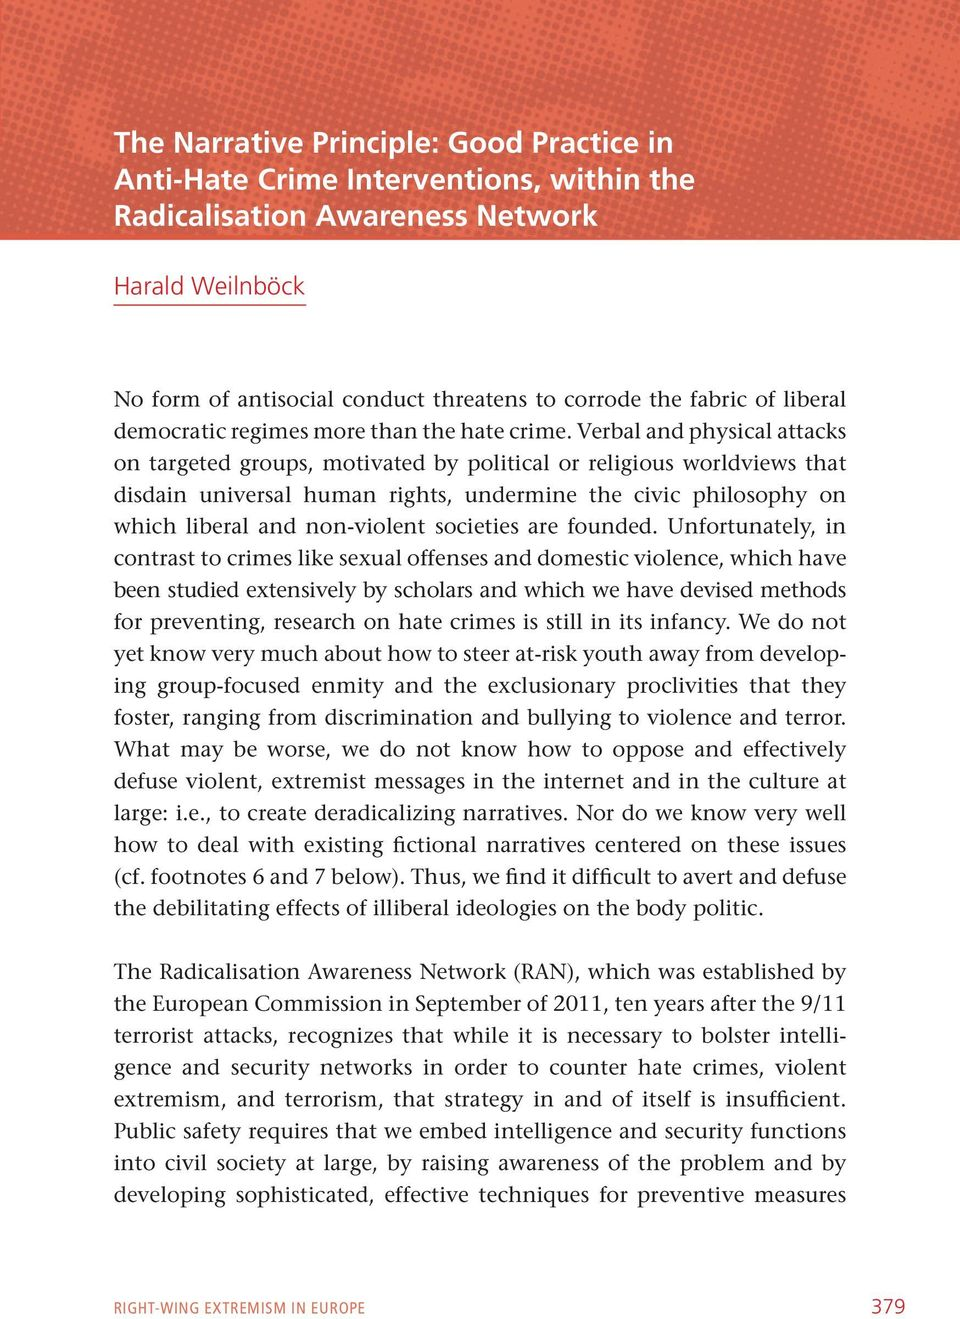 Verbal and physical attacks on targeted groups, motivated by political or religious worldviews that disdain universal human rights, undermine the civic philosophy on which liberal and non-violent